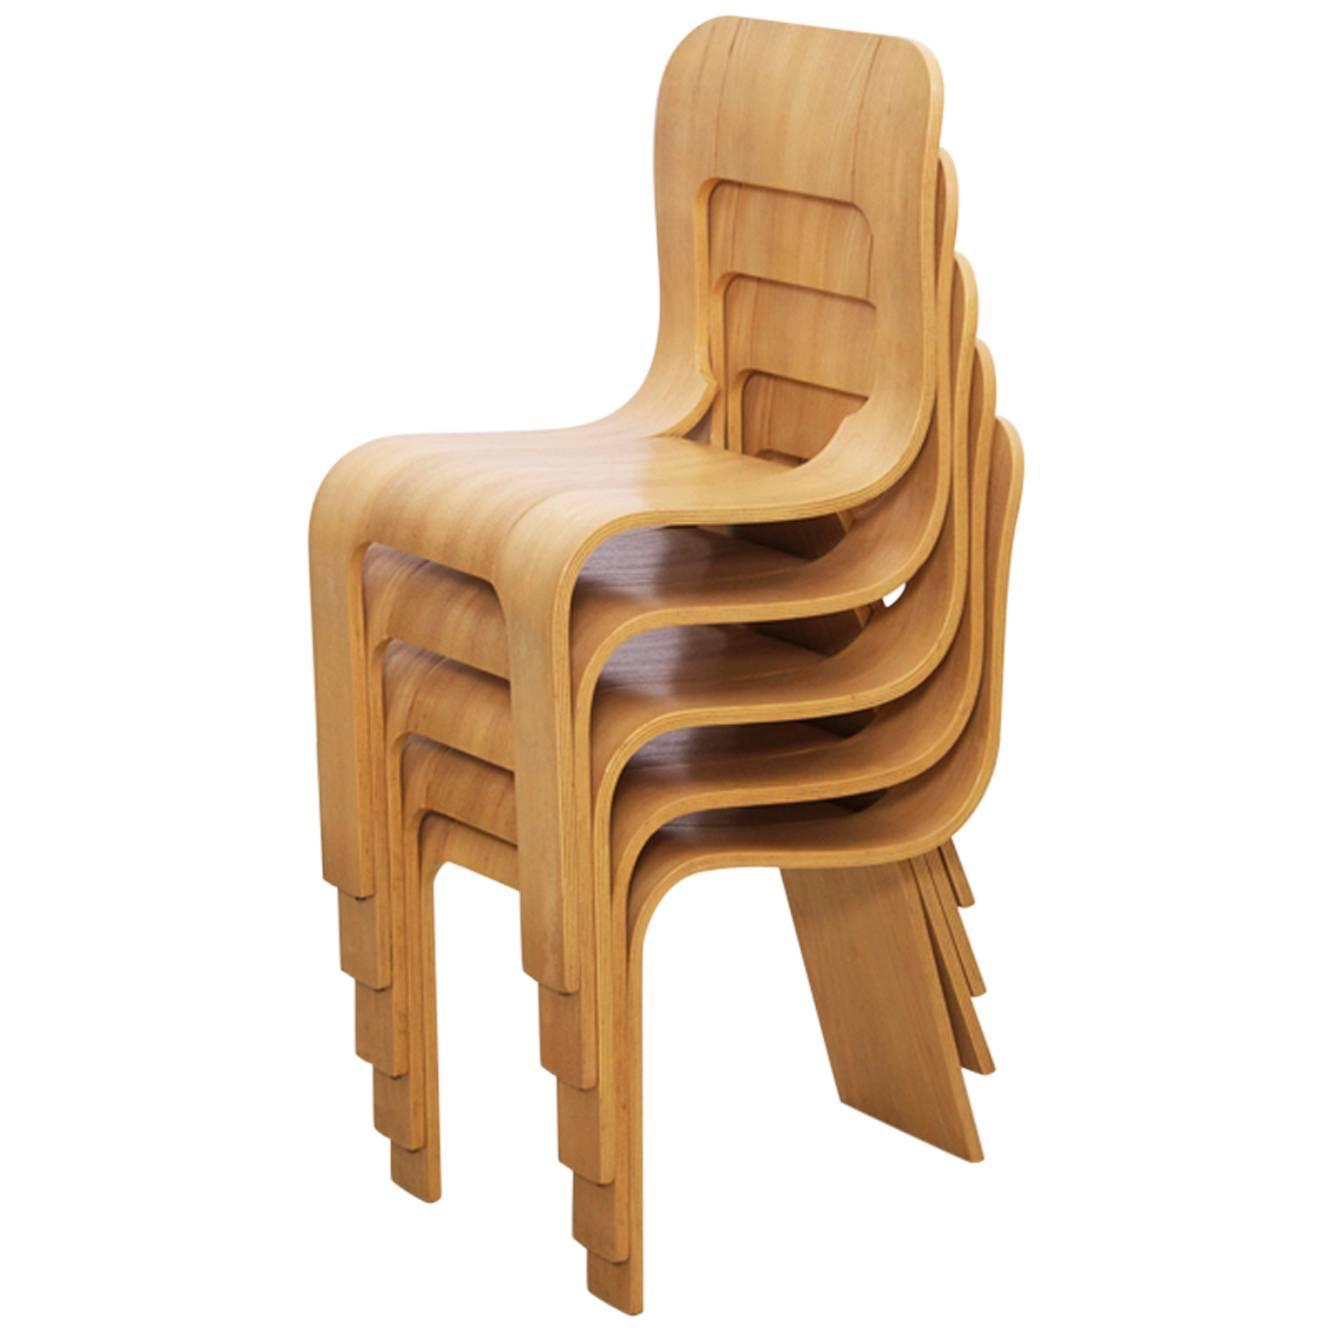 Set Of 5 Stacking Plywood Chairs By Gigi Sabadin For Stilwood Italy 1973  For Sale At 1stdibs